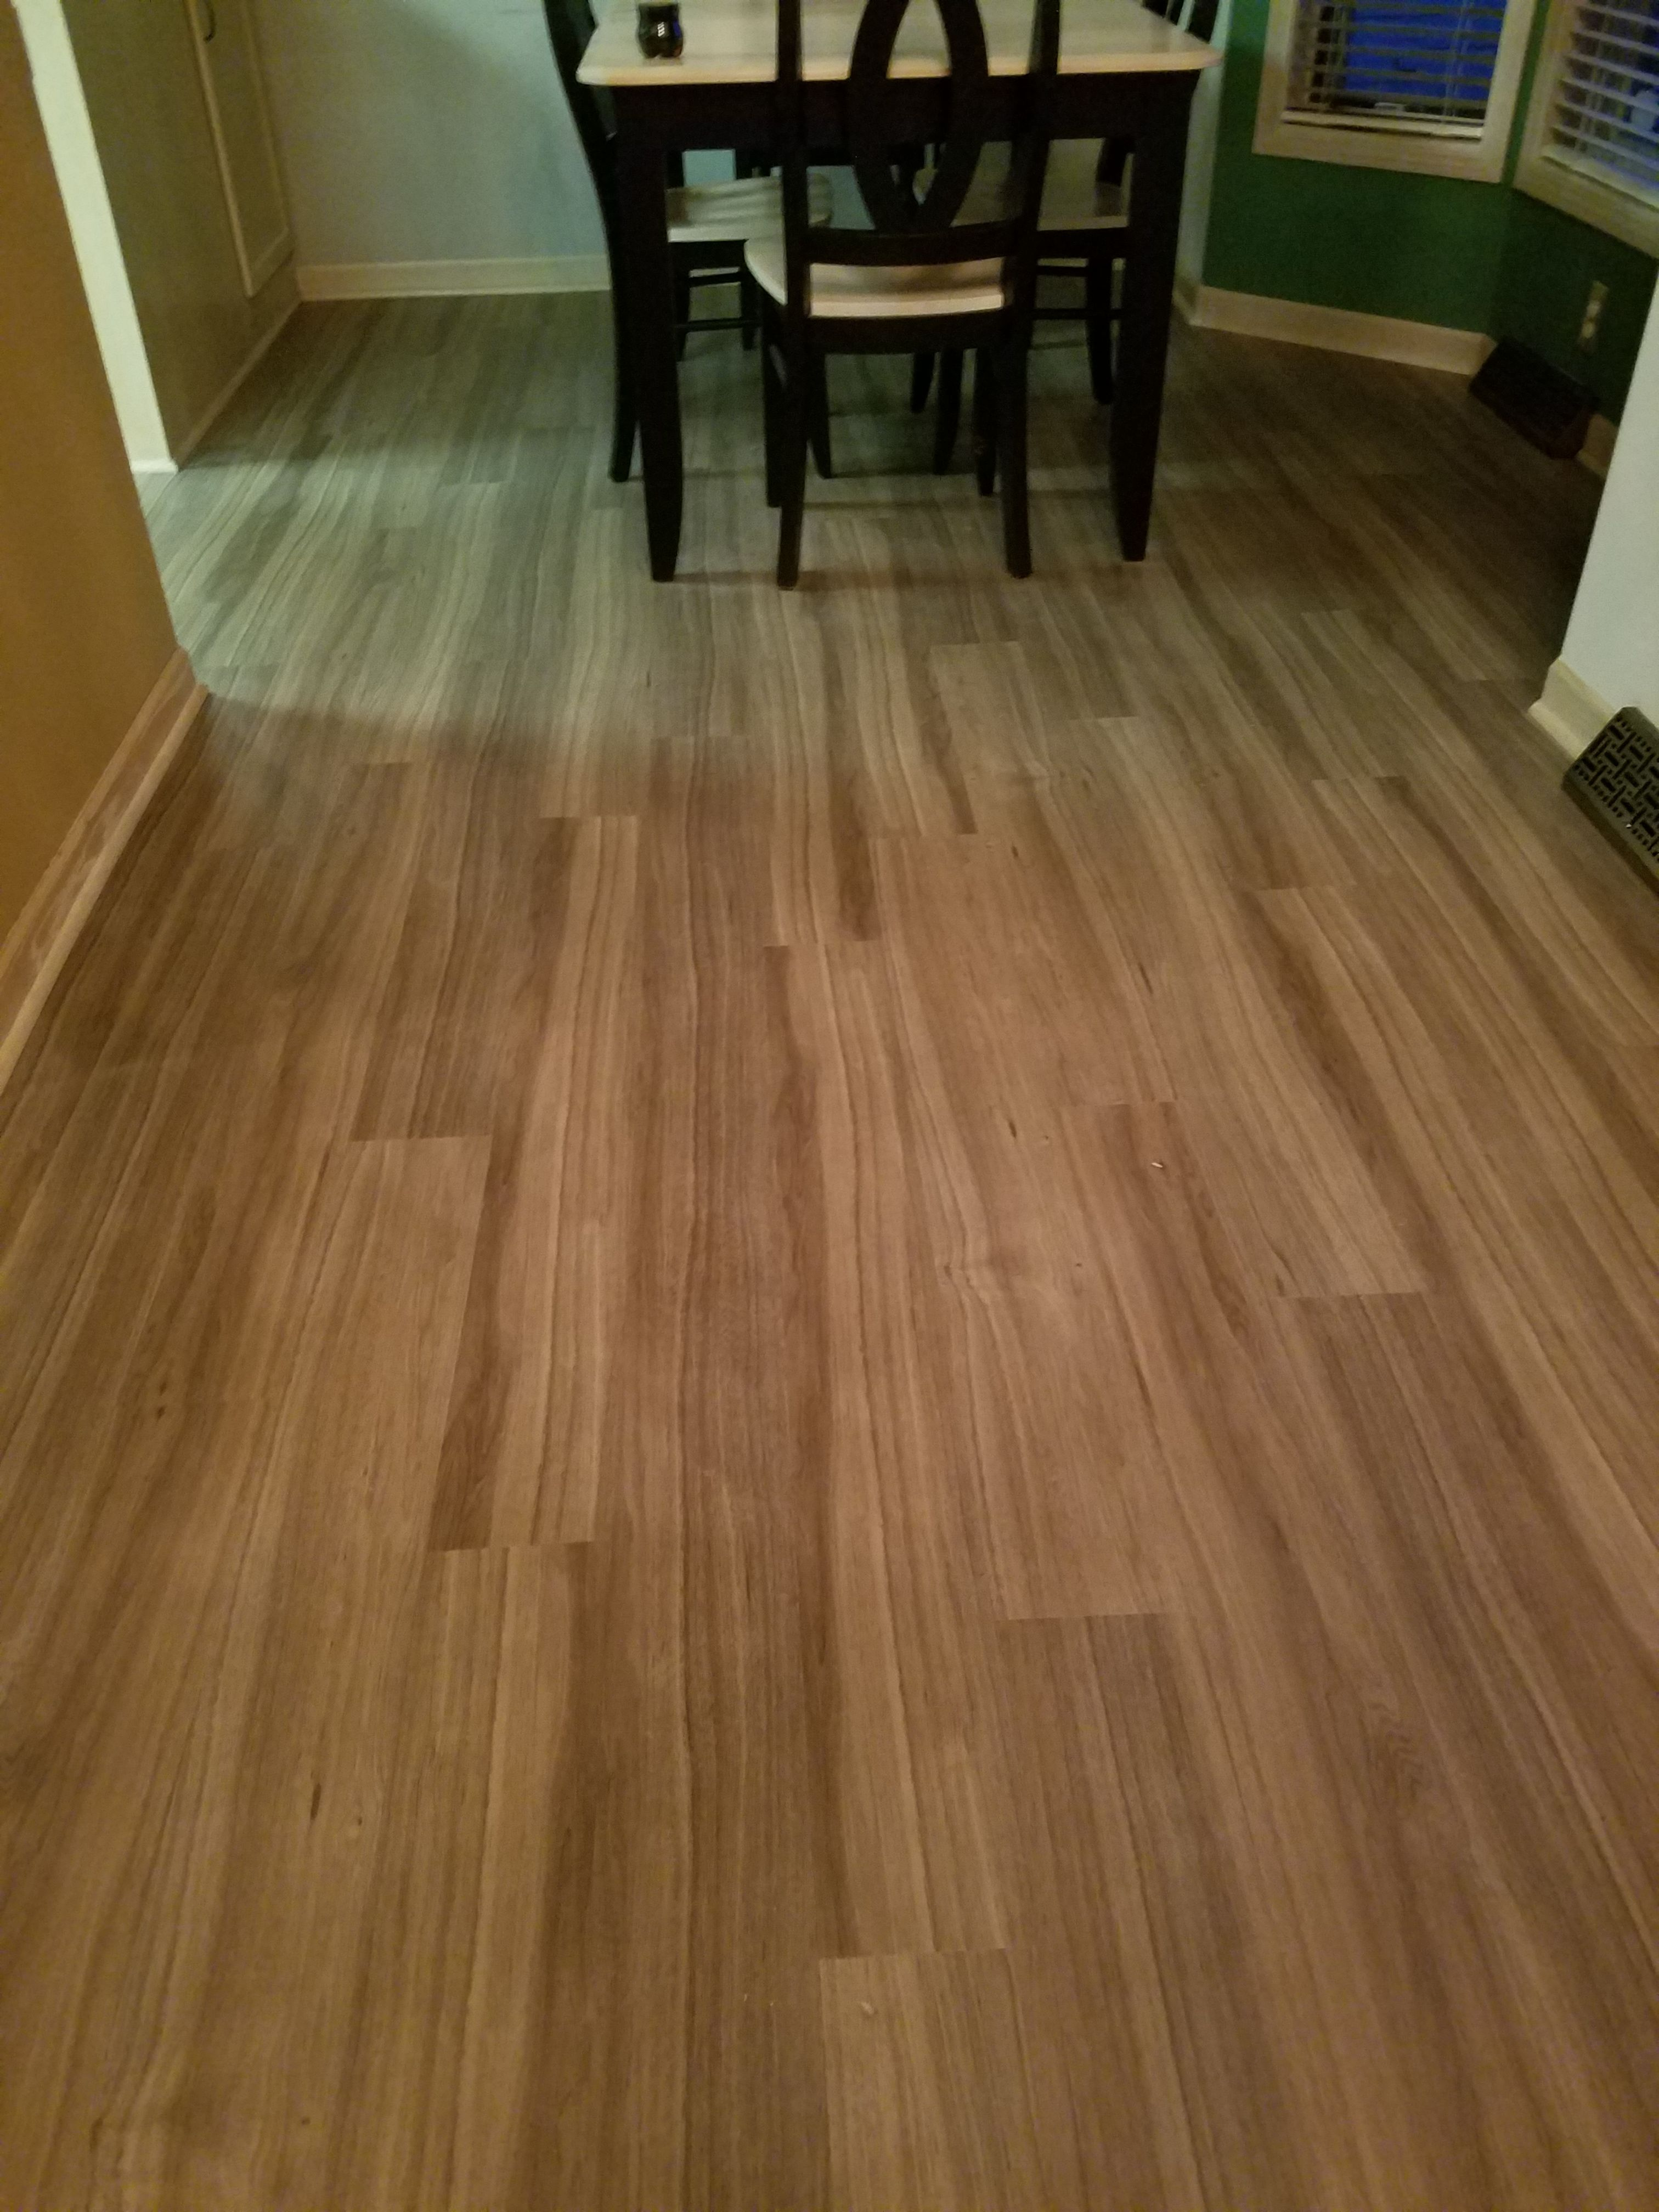 Welcome To Floor Coverings International Waukesha We Are The